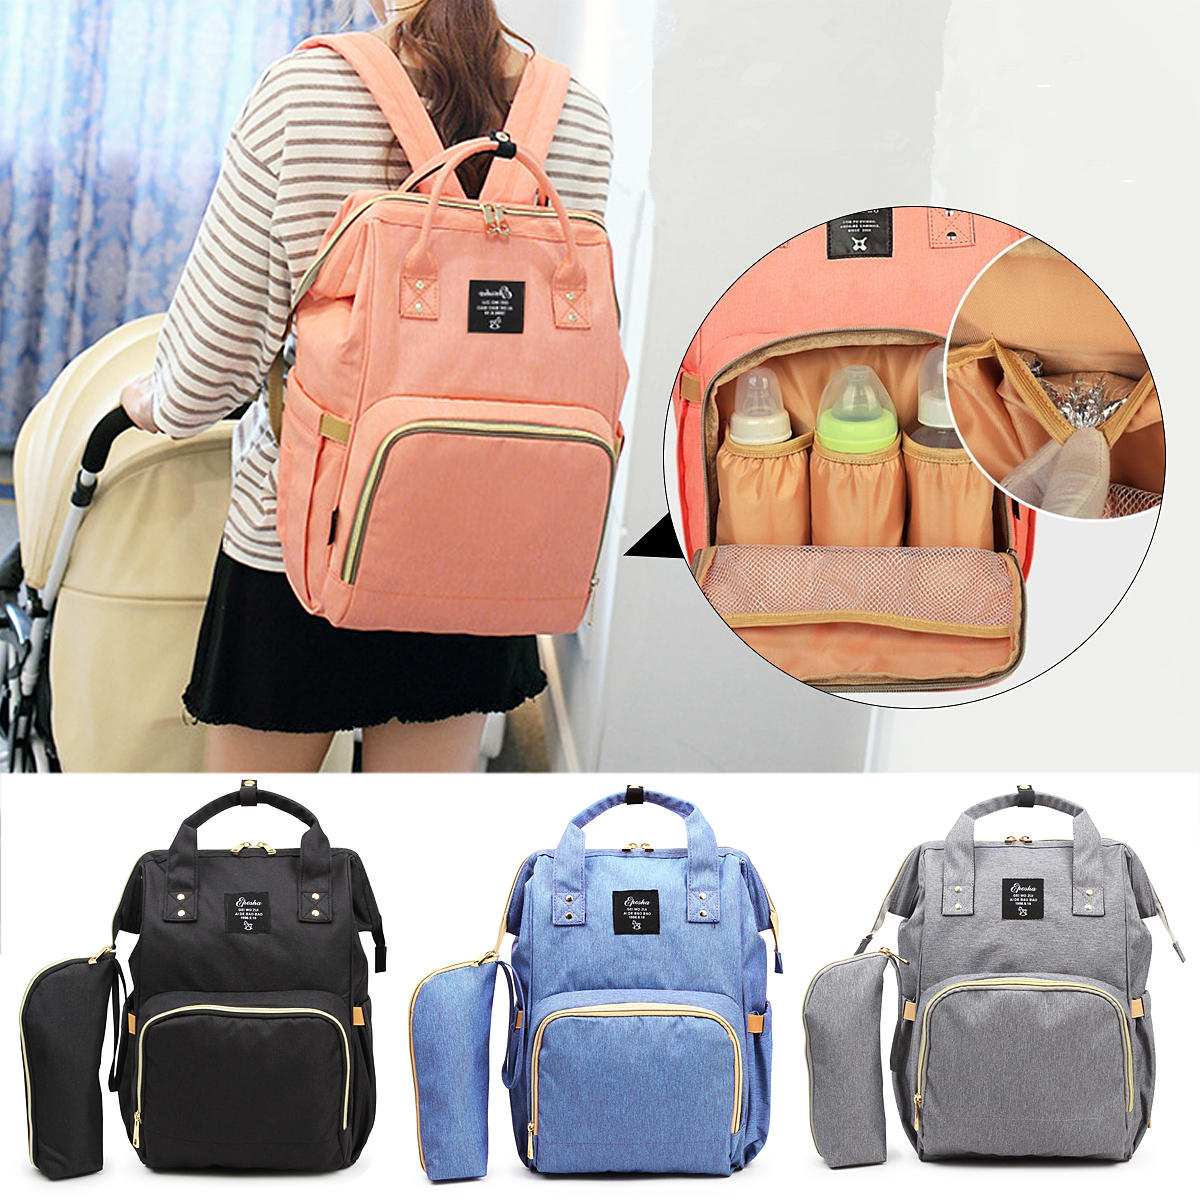 8006694509 mummy maternity nappy bag large capacity outdoor travel backpack nursing bag  for baby care Sale - Banggood.com sold out